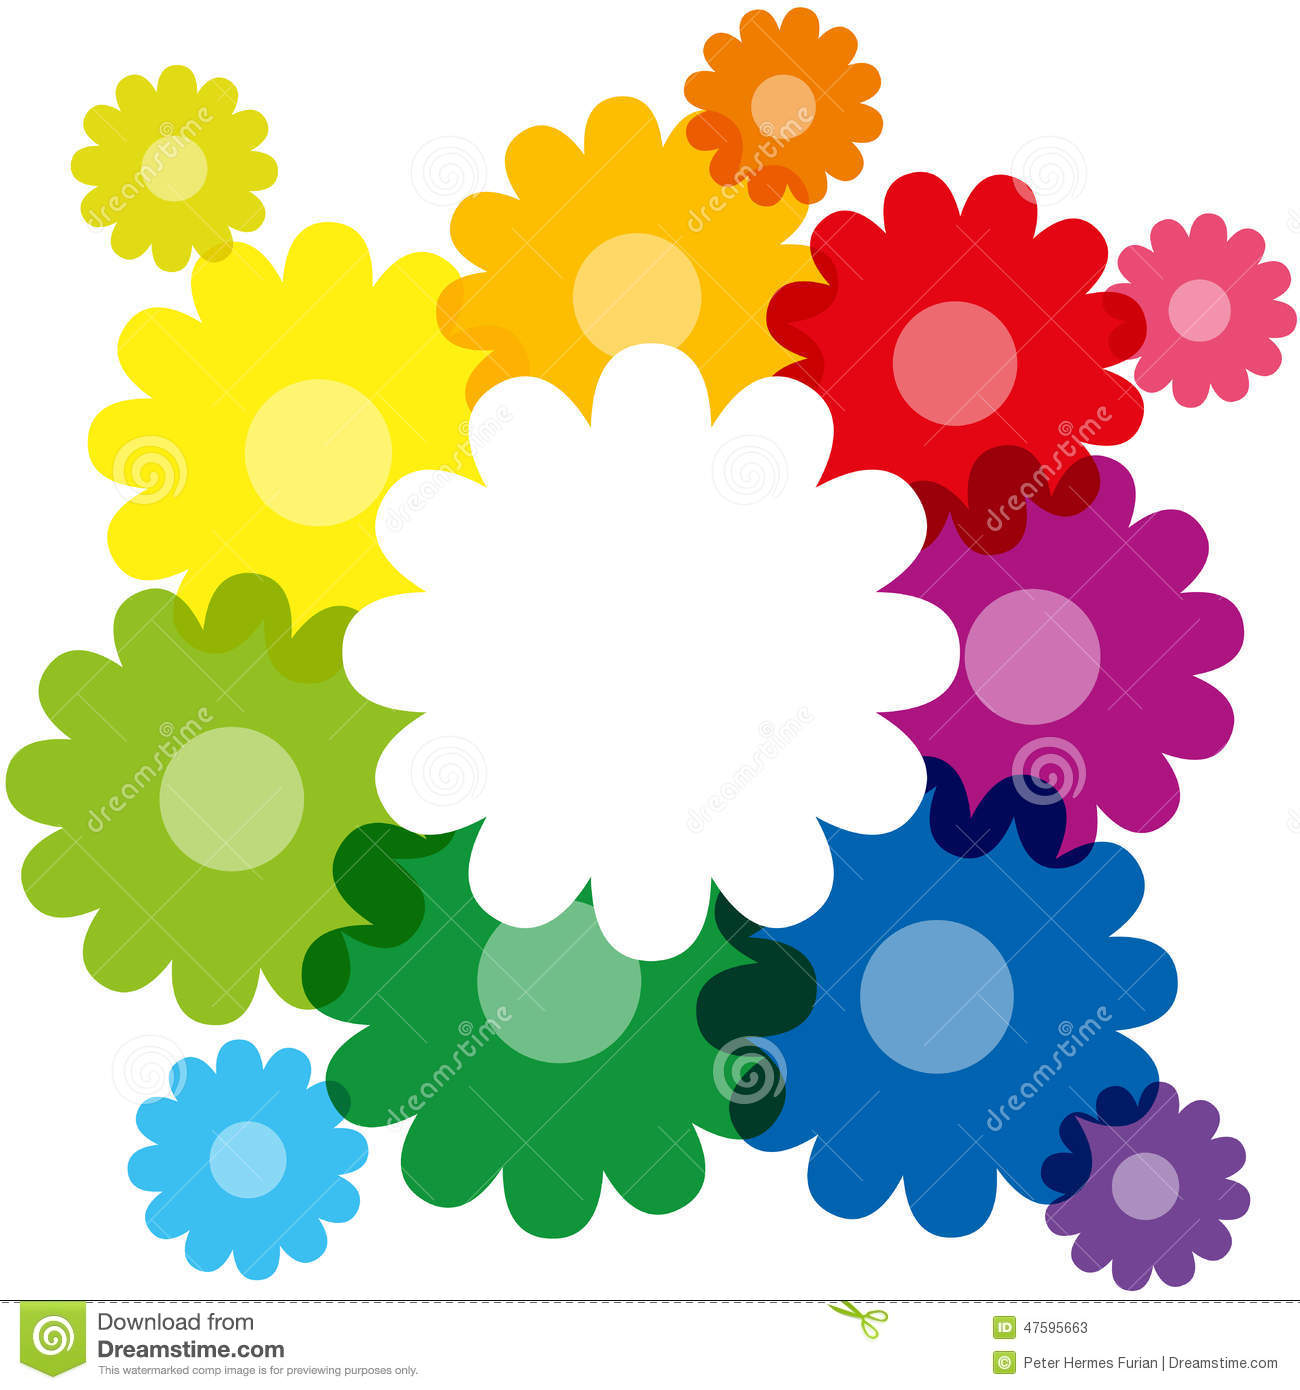 Rainbow colored flowers forming a colorful bouquet and frame to write ...